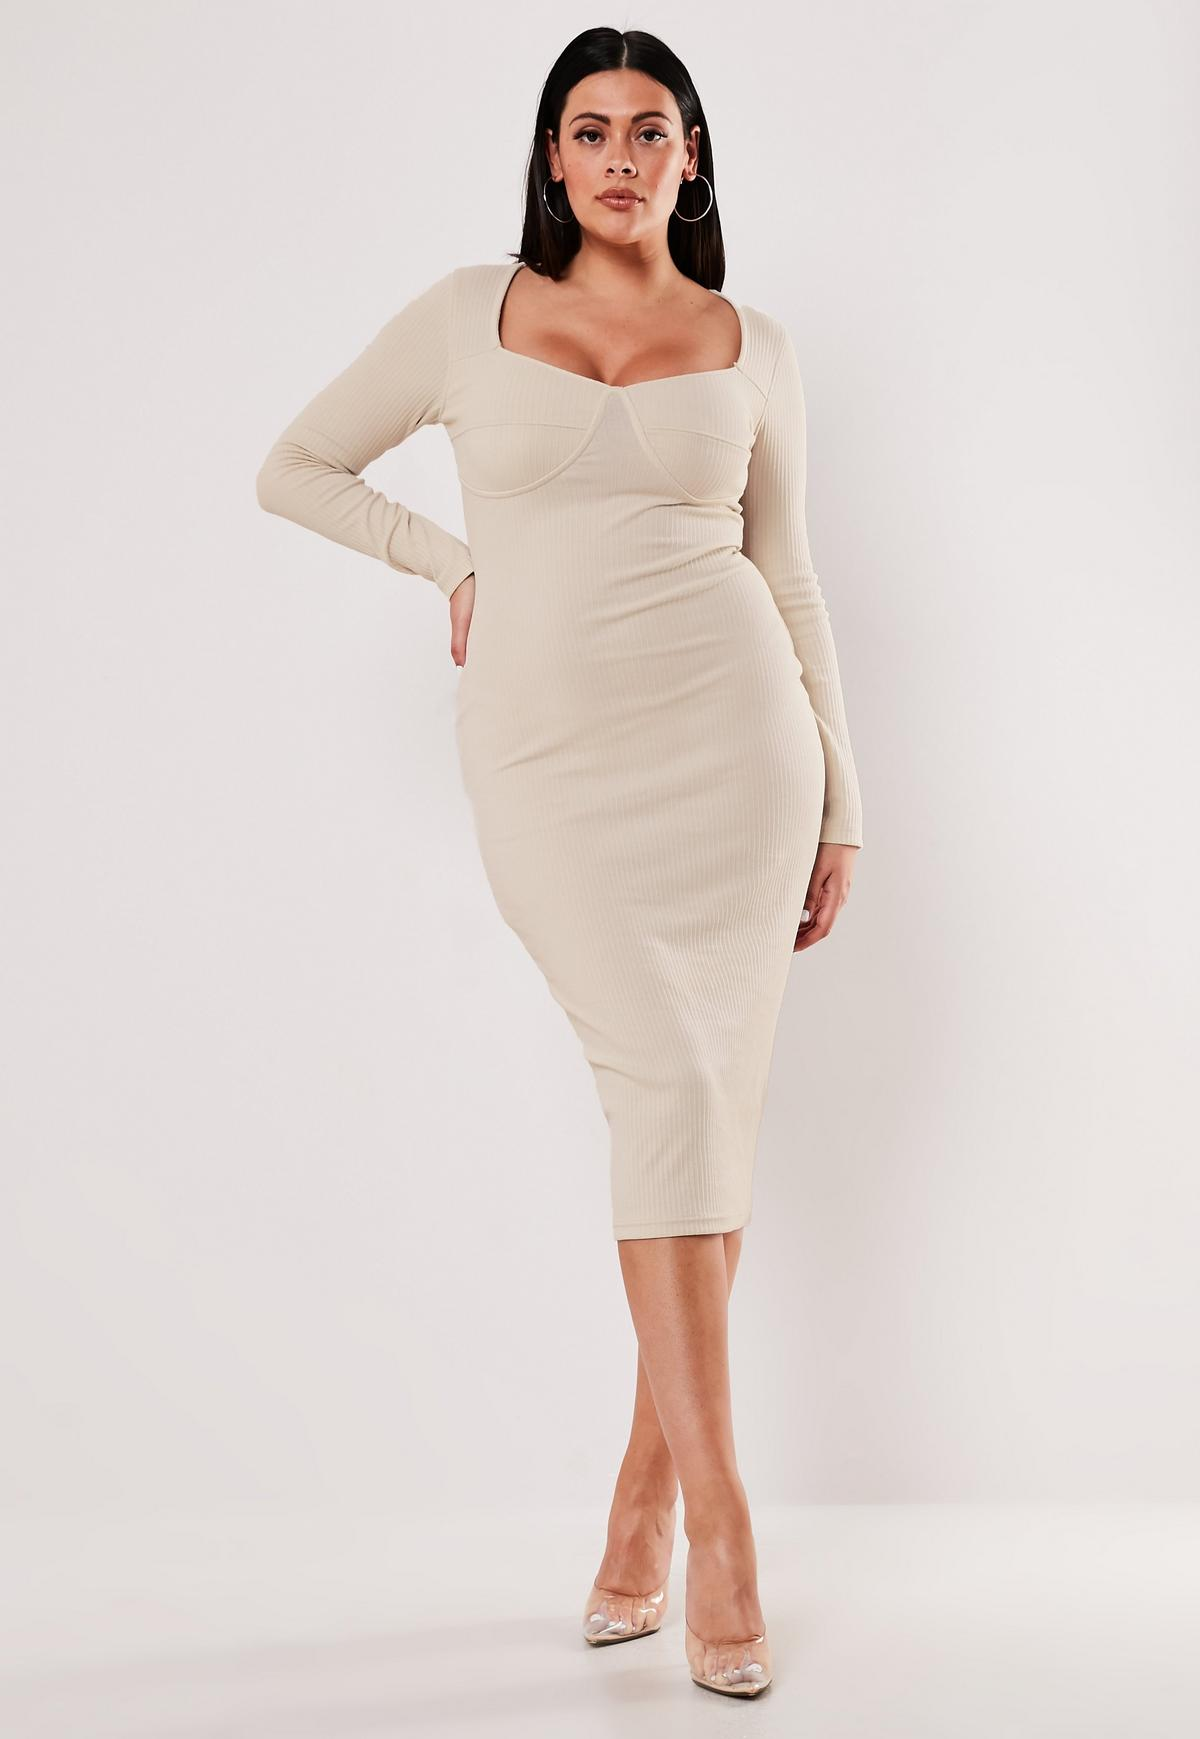 Plus Size Cream Bust Cup Detail Midi Dress